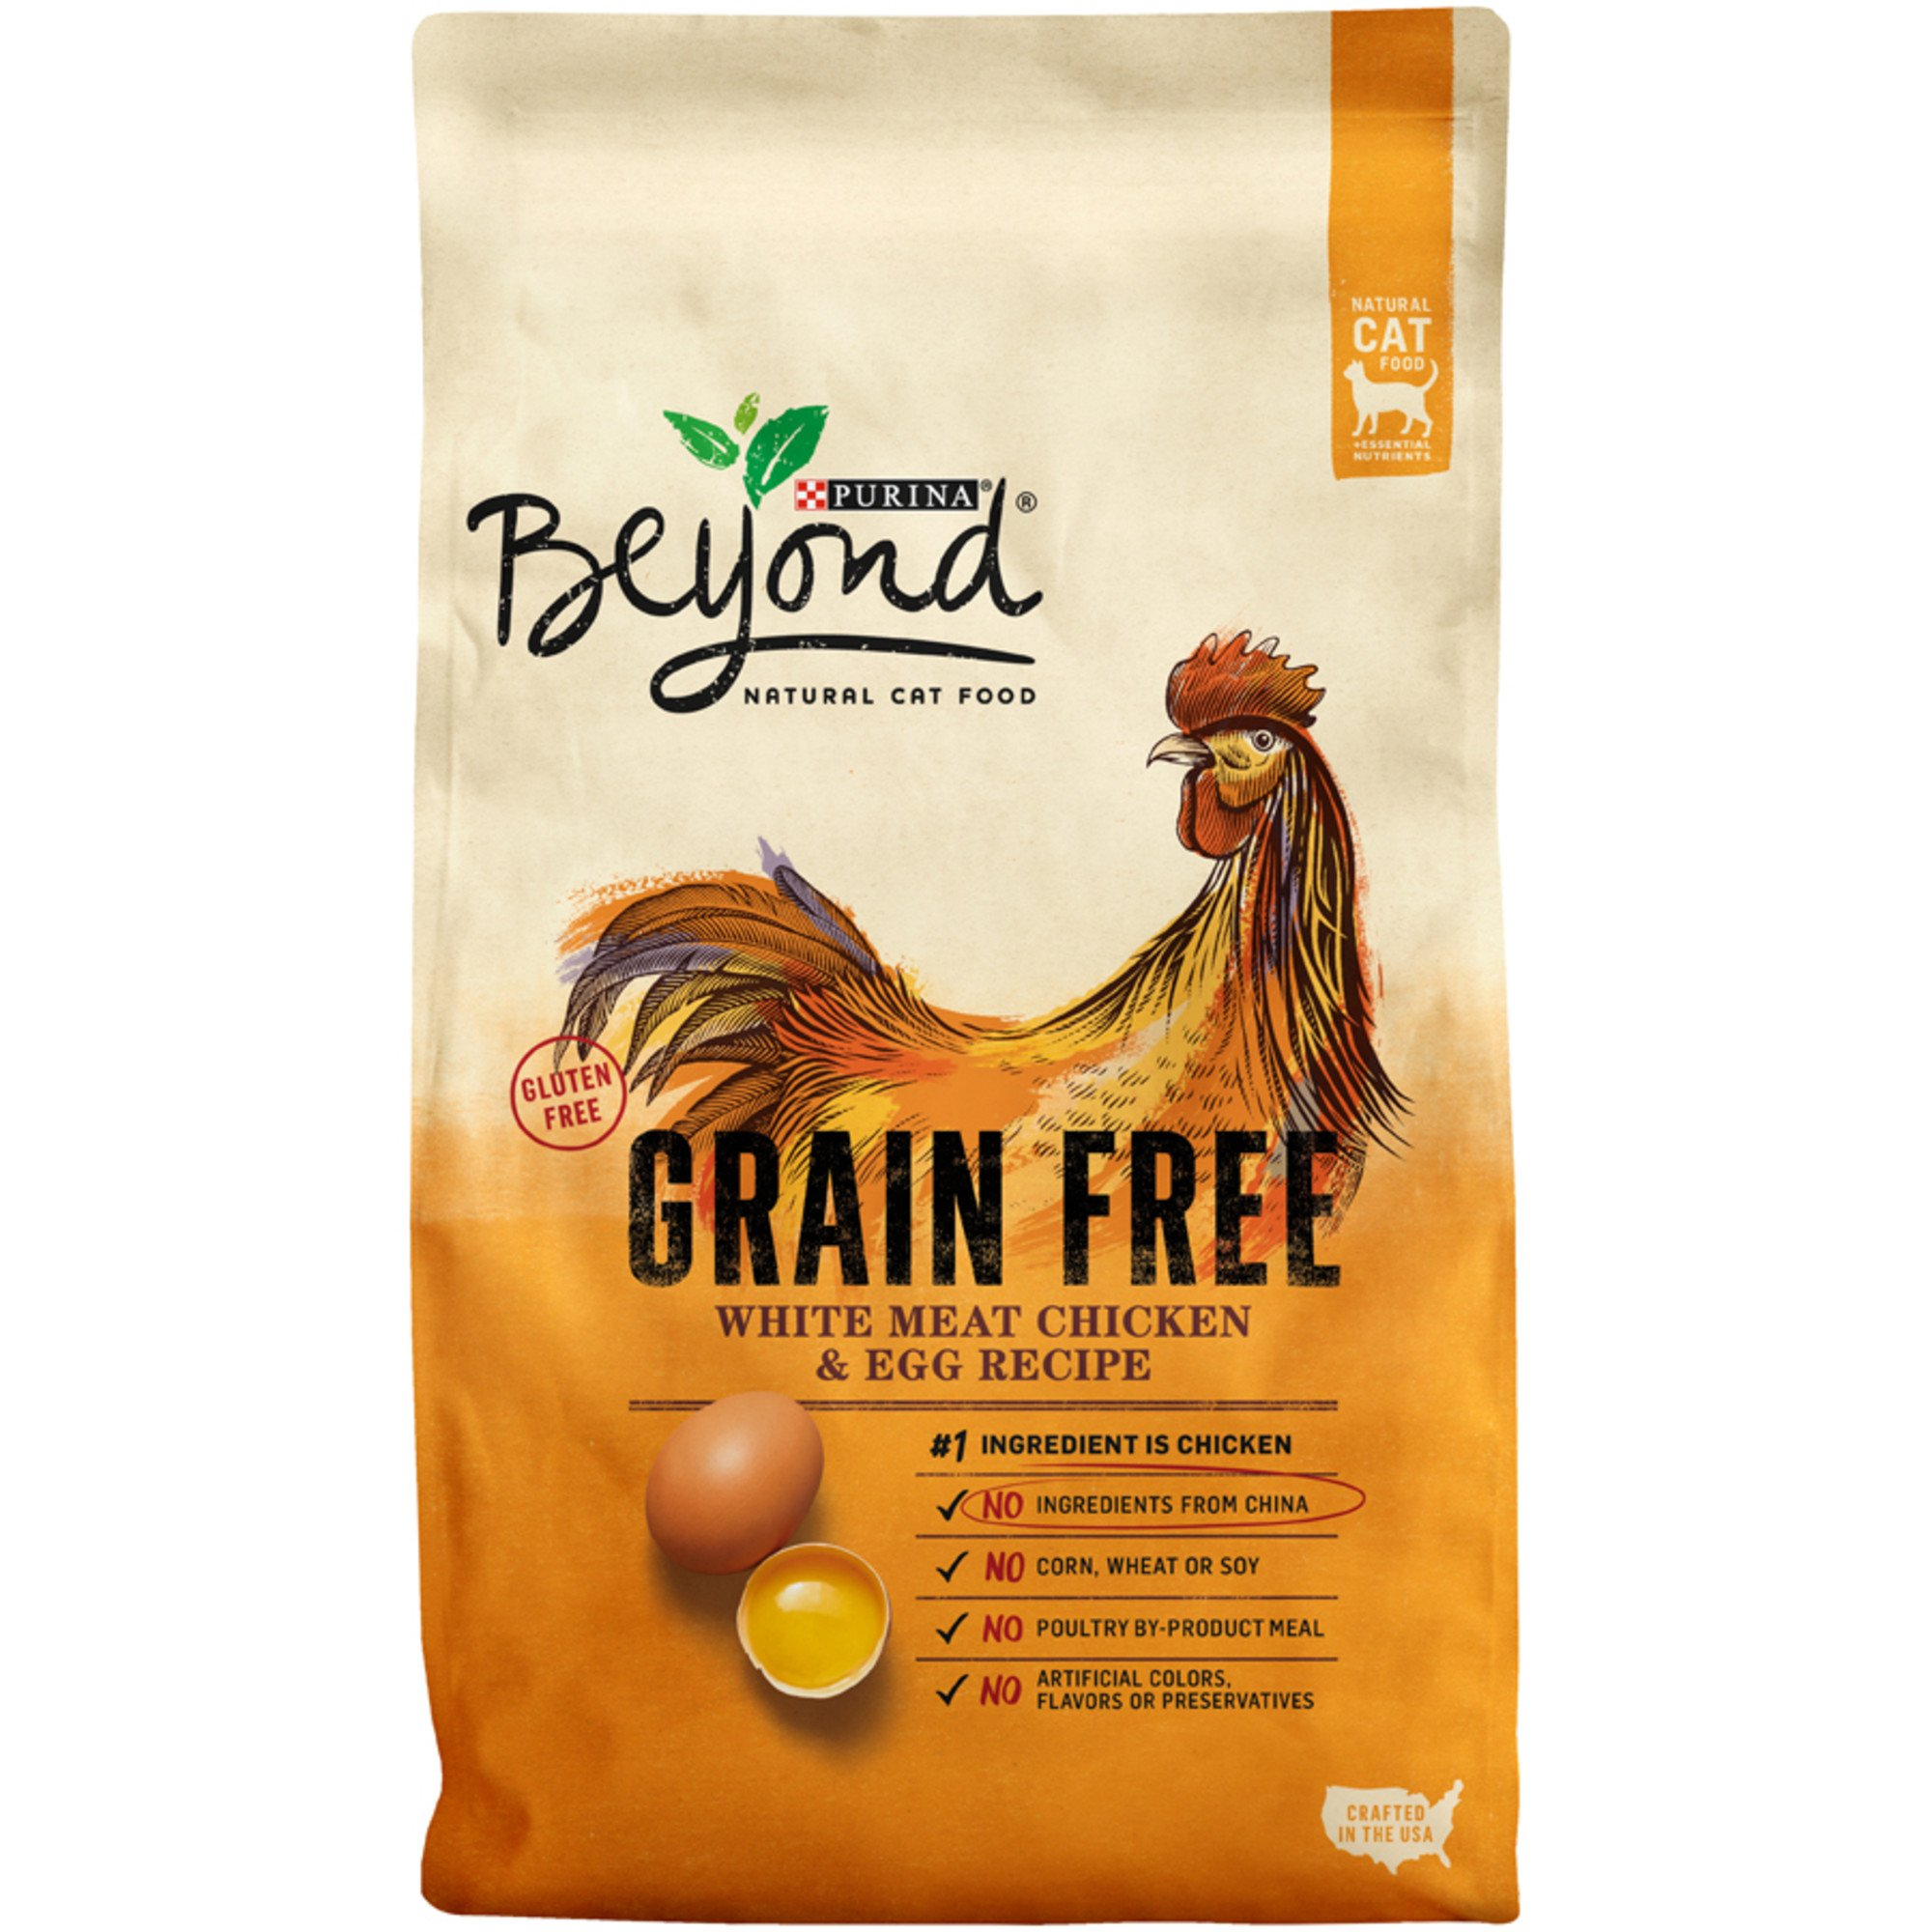 Purina Beyond White Meat Chicken & Egg Recipe Grain-Free Dry Cat Food, 5-lb bag